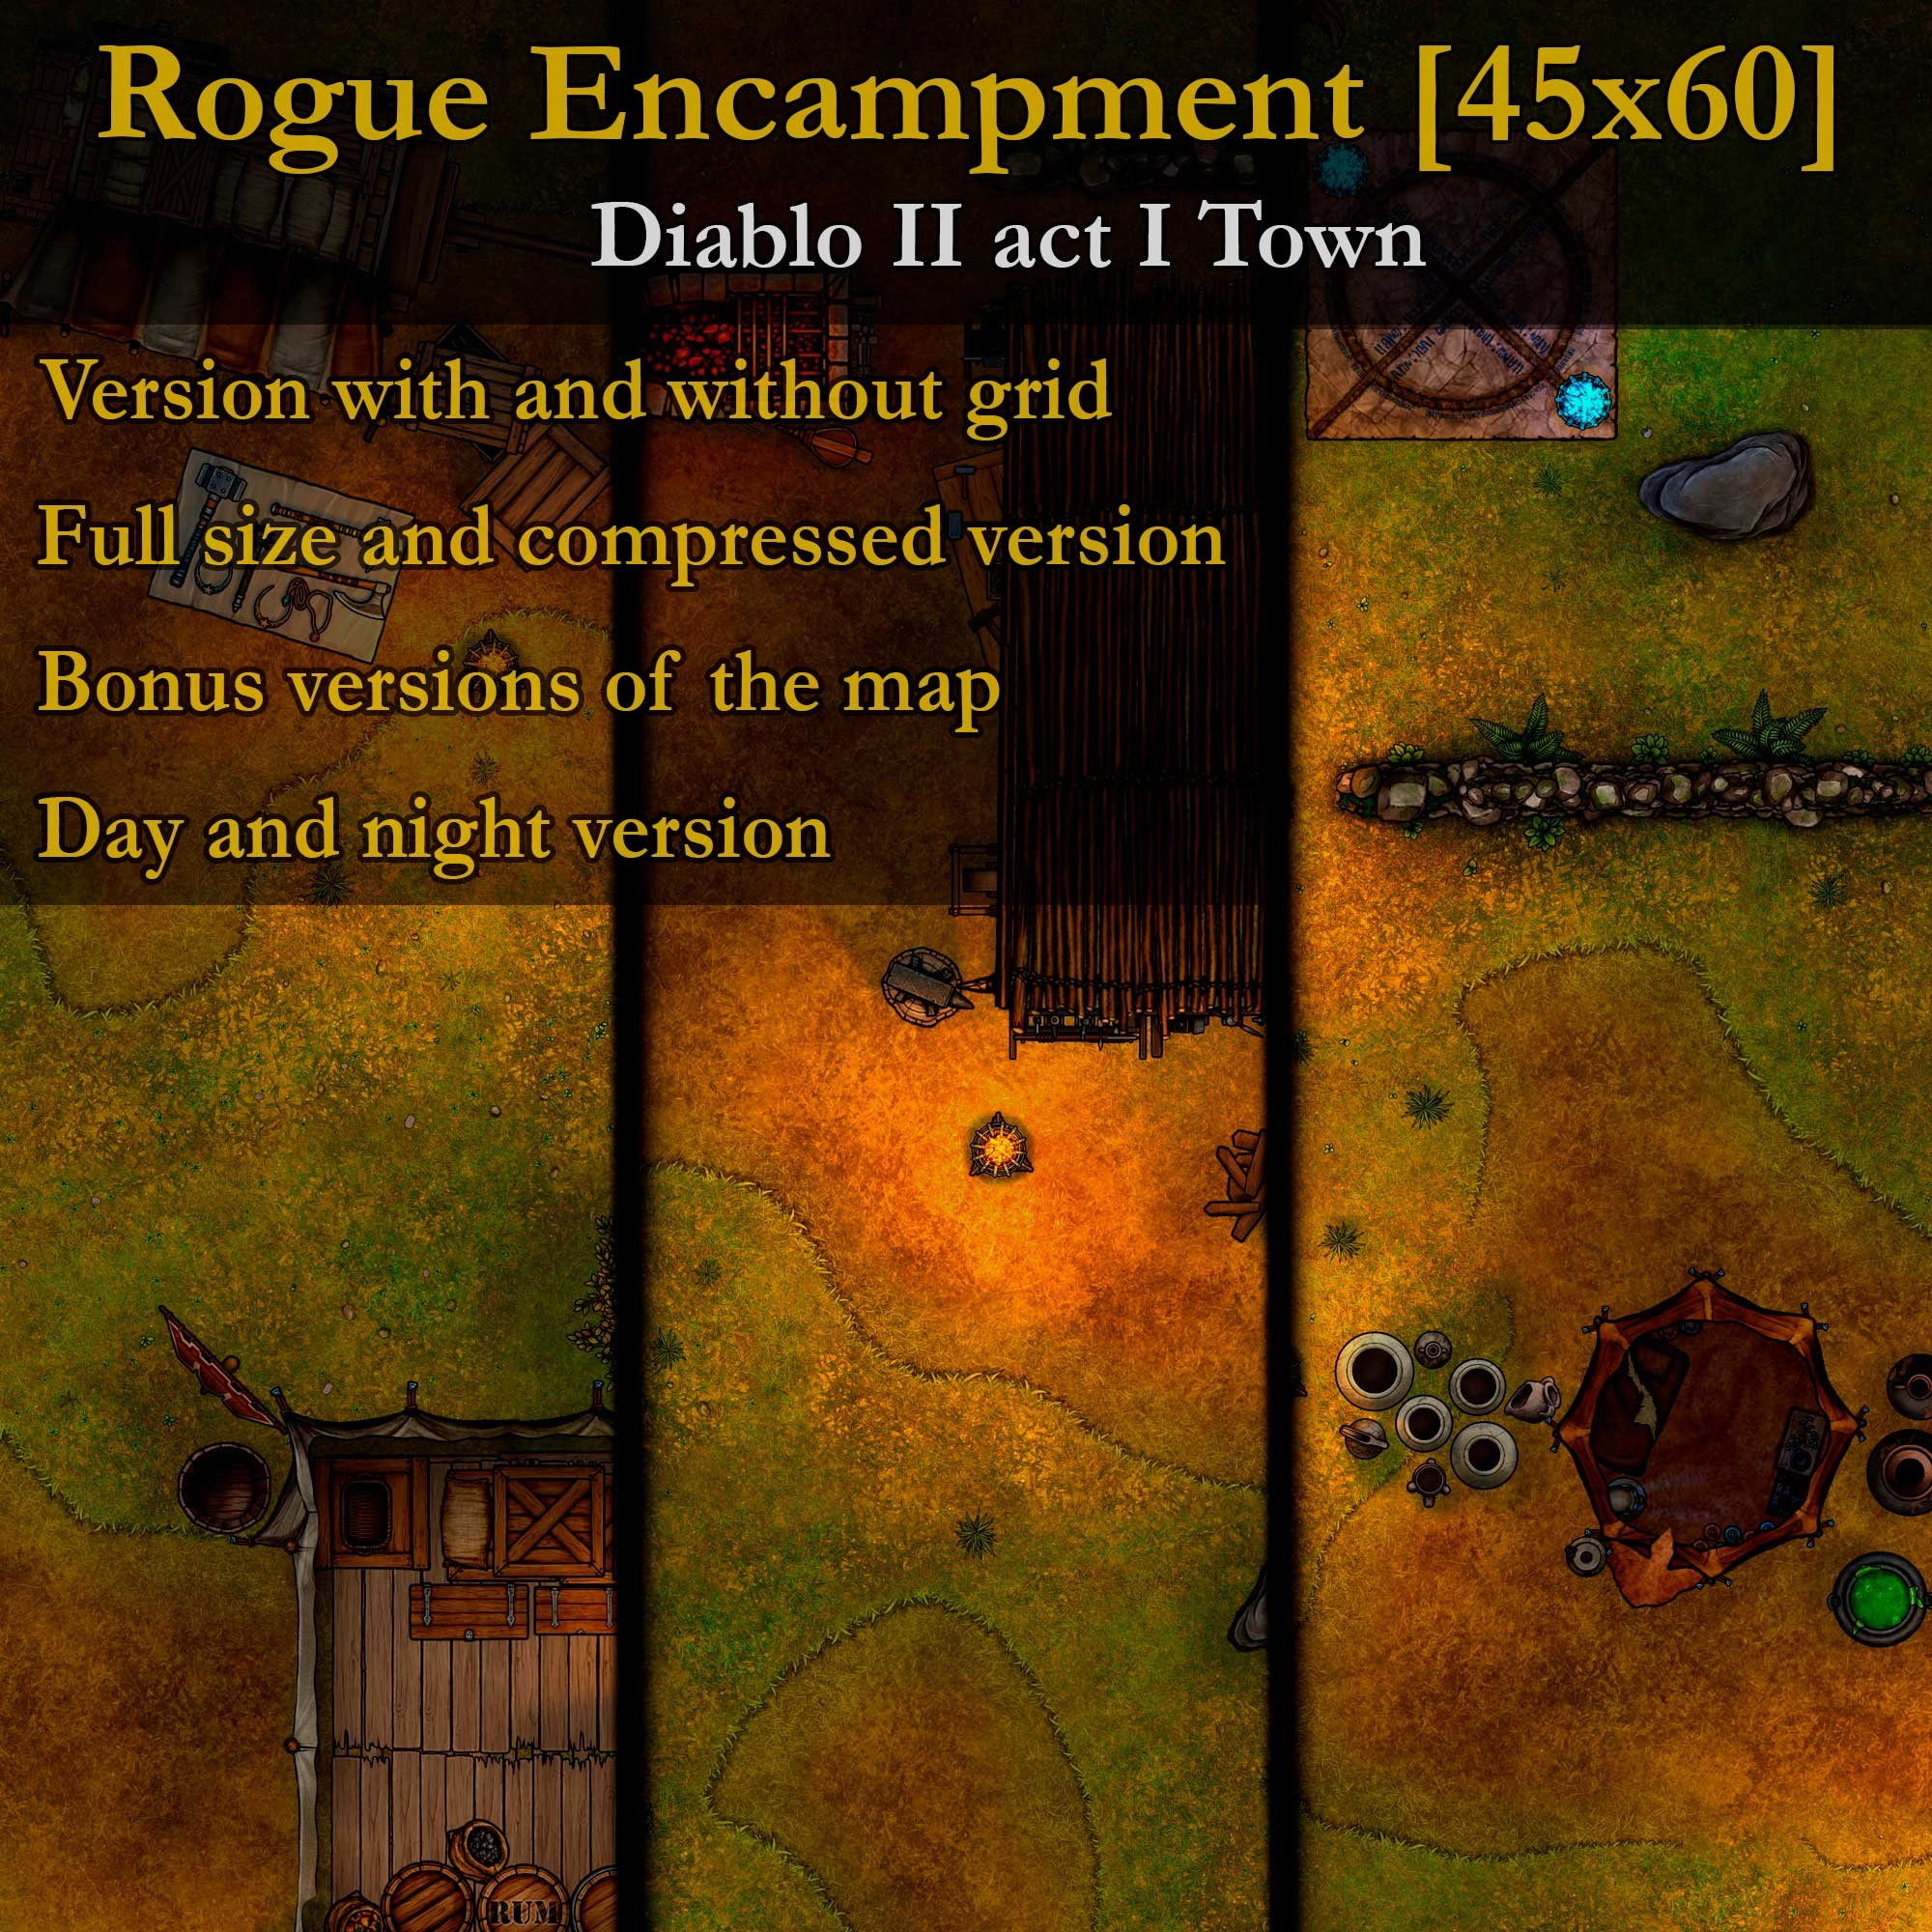 Rogue Encampment (Diablo II) [45x60] – Large detailed map ready to play